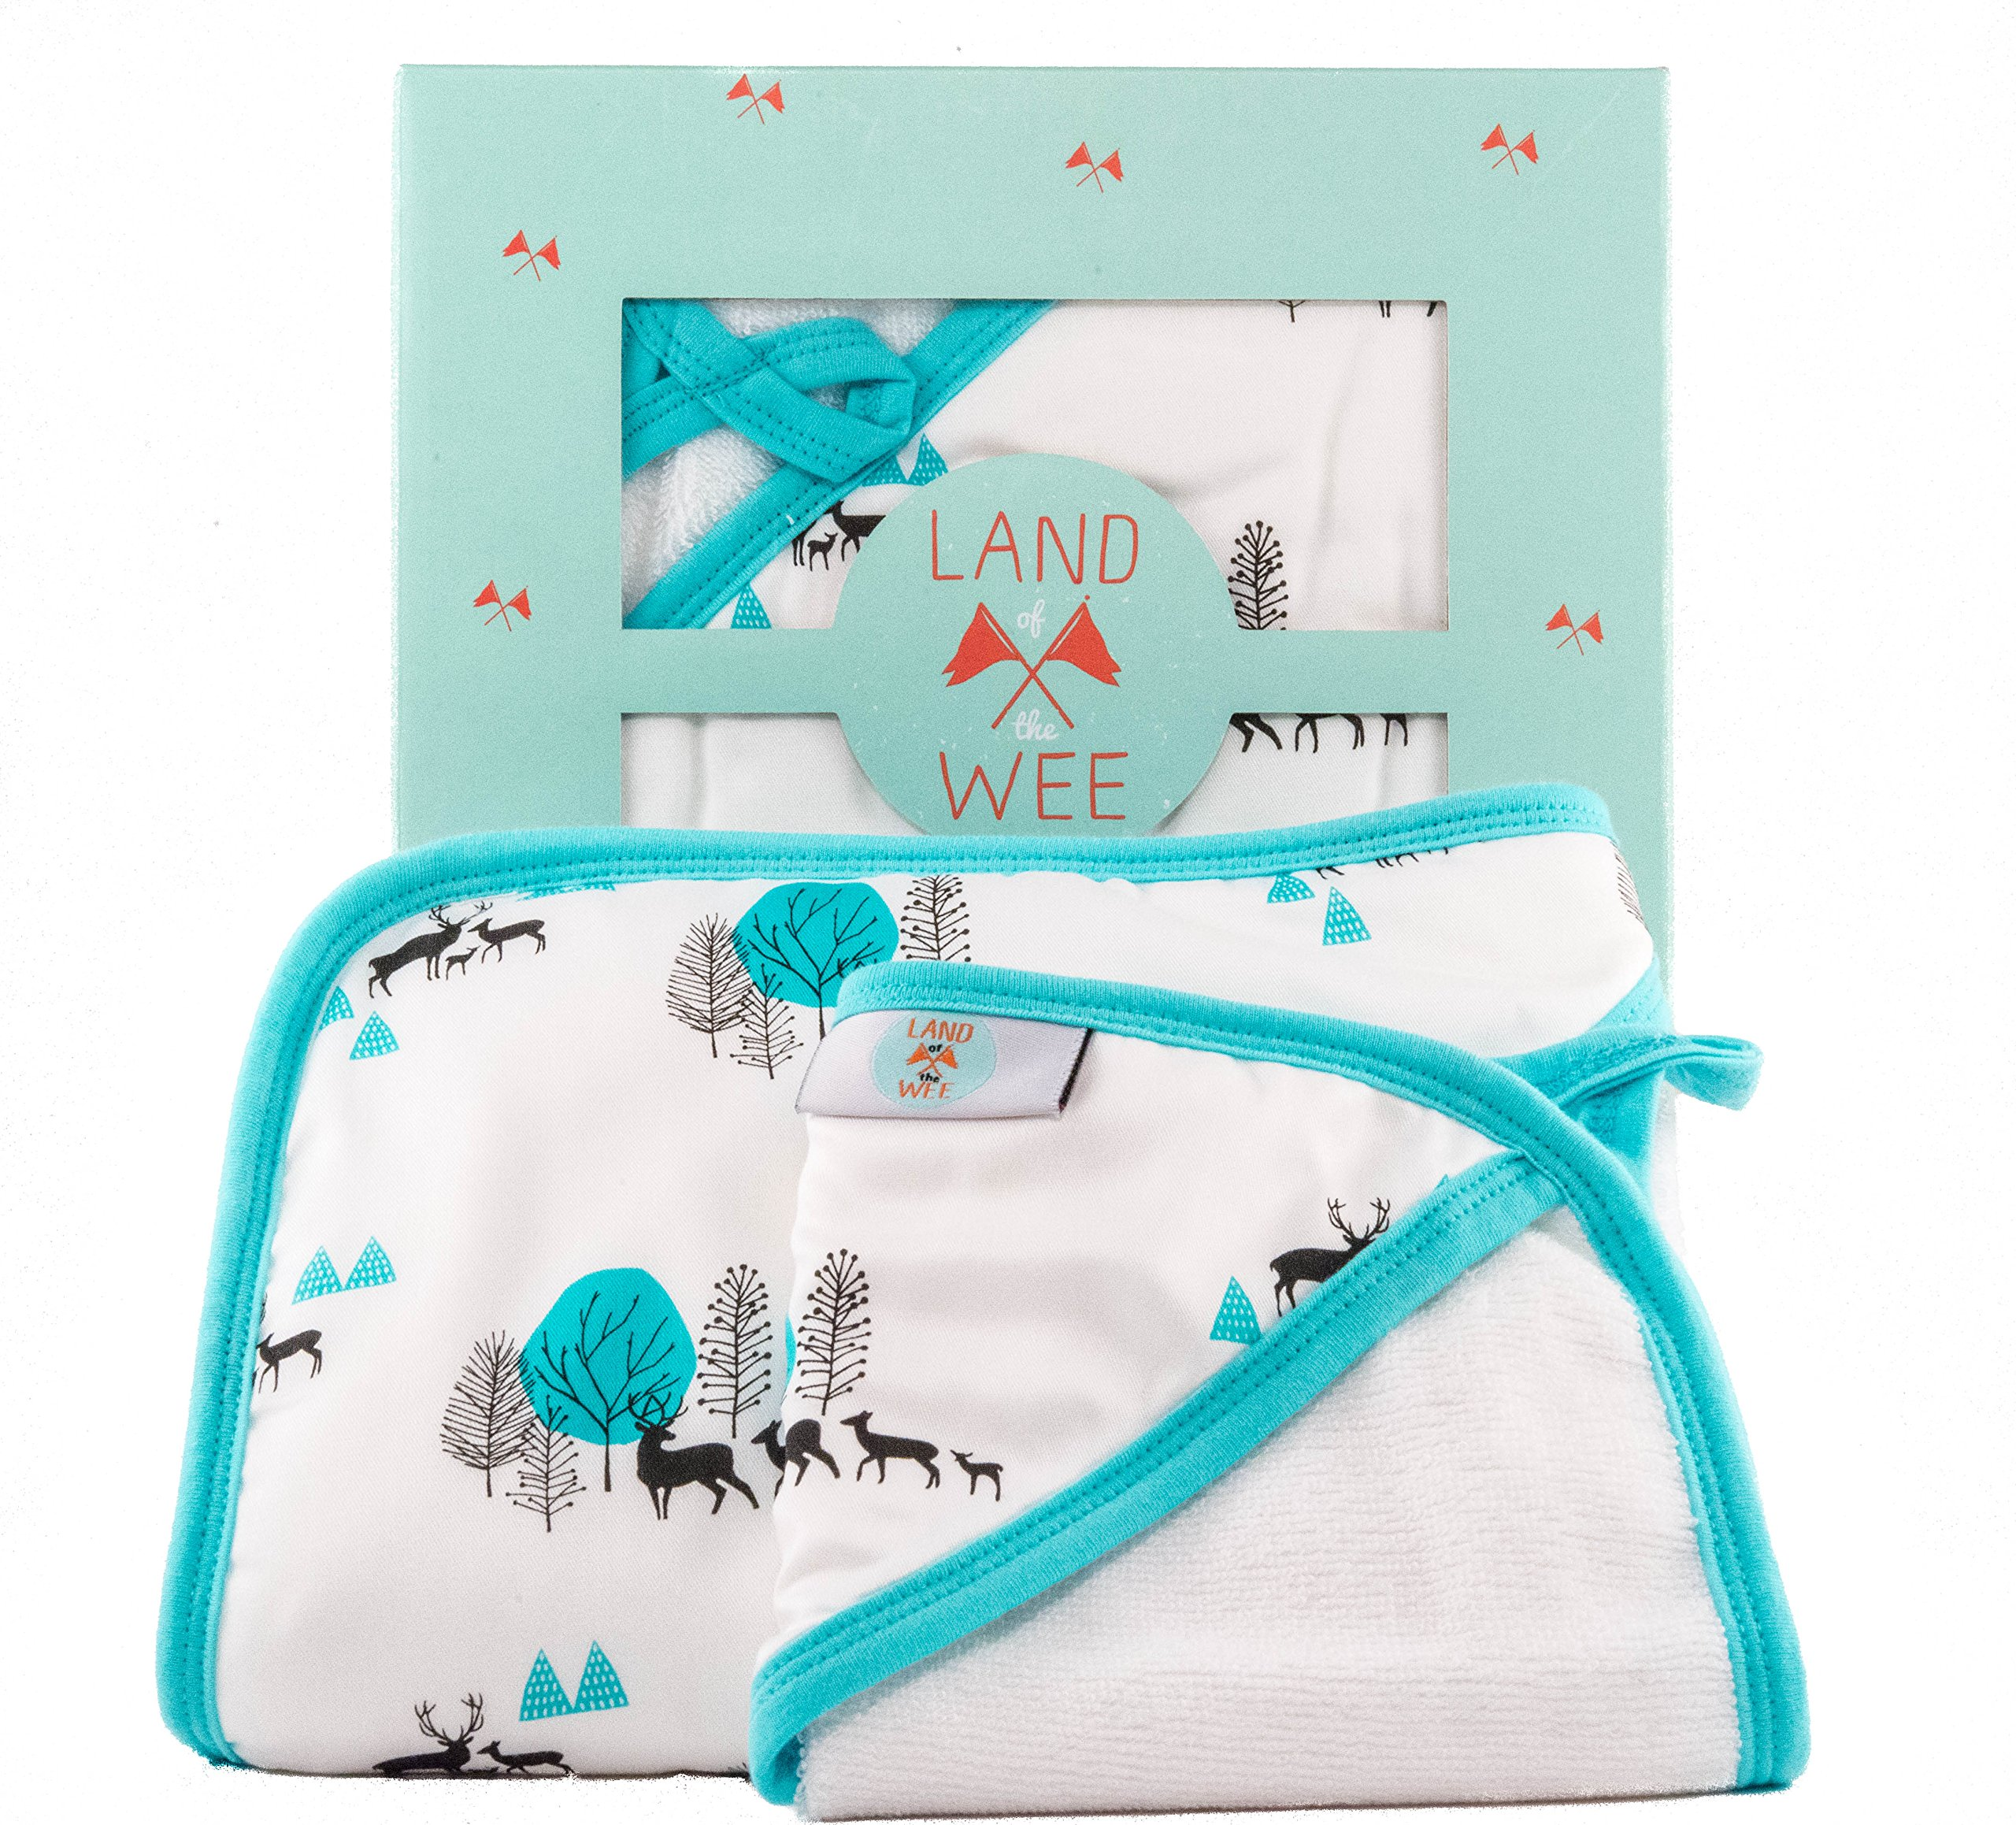 Luxury Hooded Baby Towel and Washcloth Set - Unisex Woodland Print - Extra Soft Organic Bamboo Bath Towel With Hood | Hypoallergenic and Gentle for Sensitive Skin of Newborn to Toddler Boys and Girls